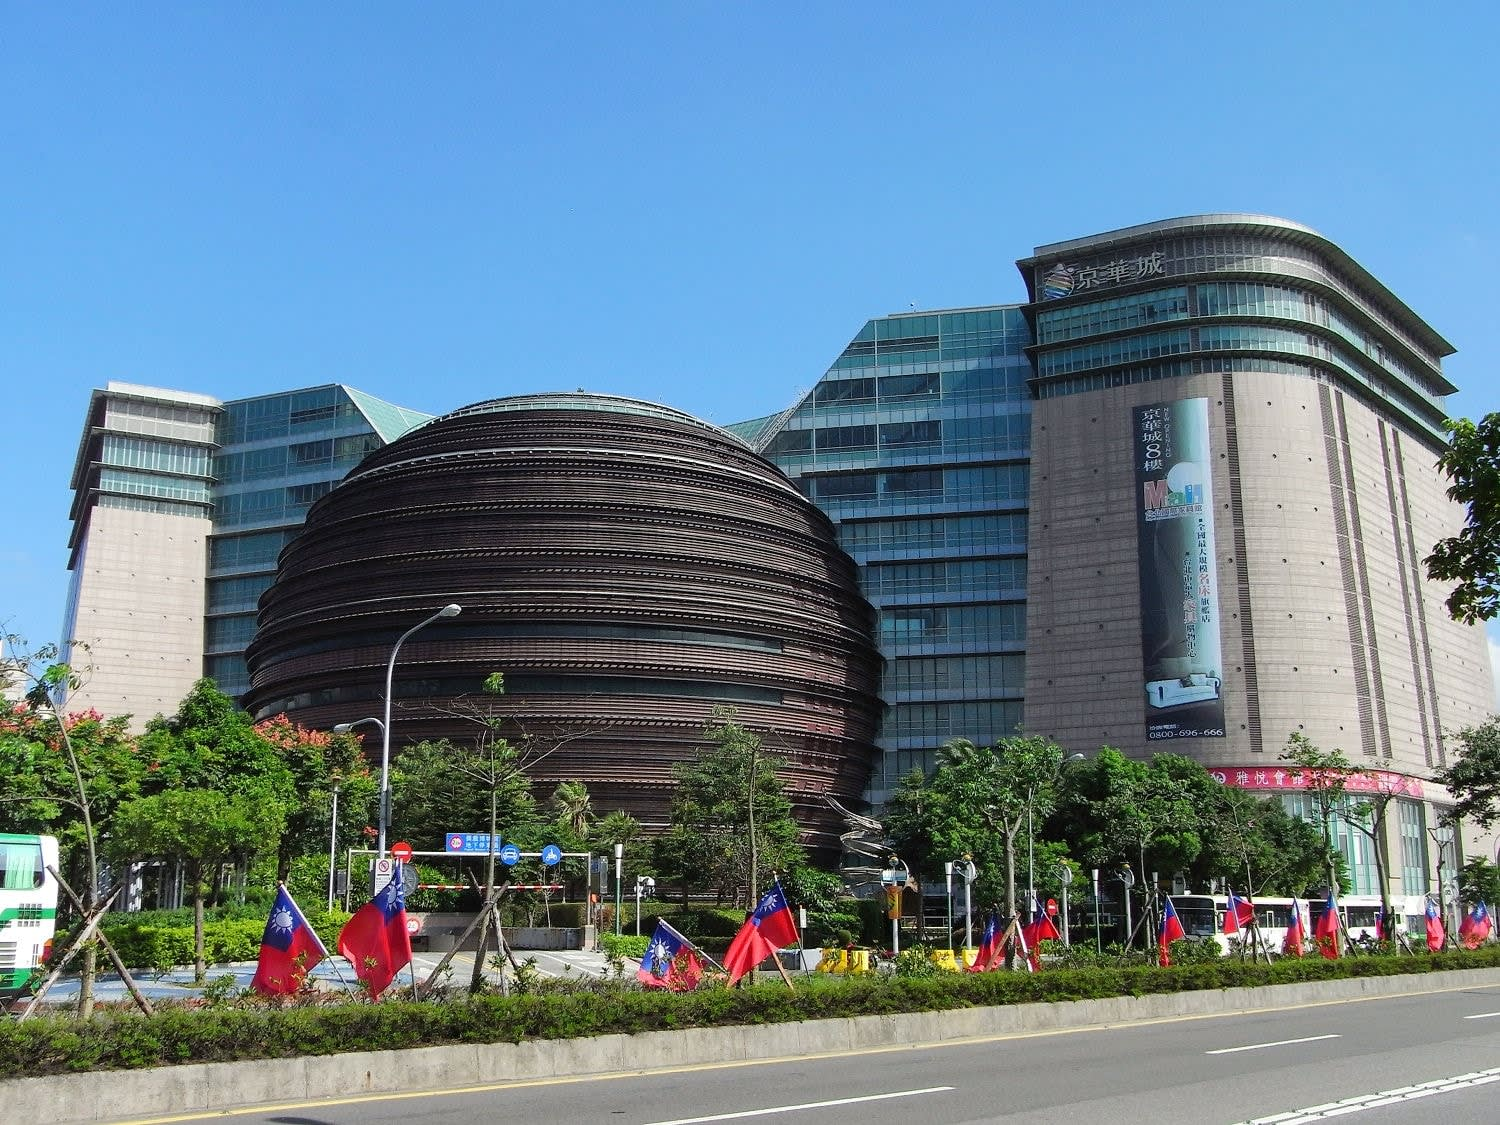 10 Best Taipei Shopping Malls And Markets For Intensive